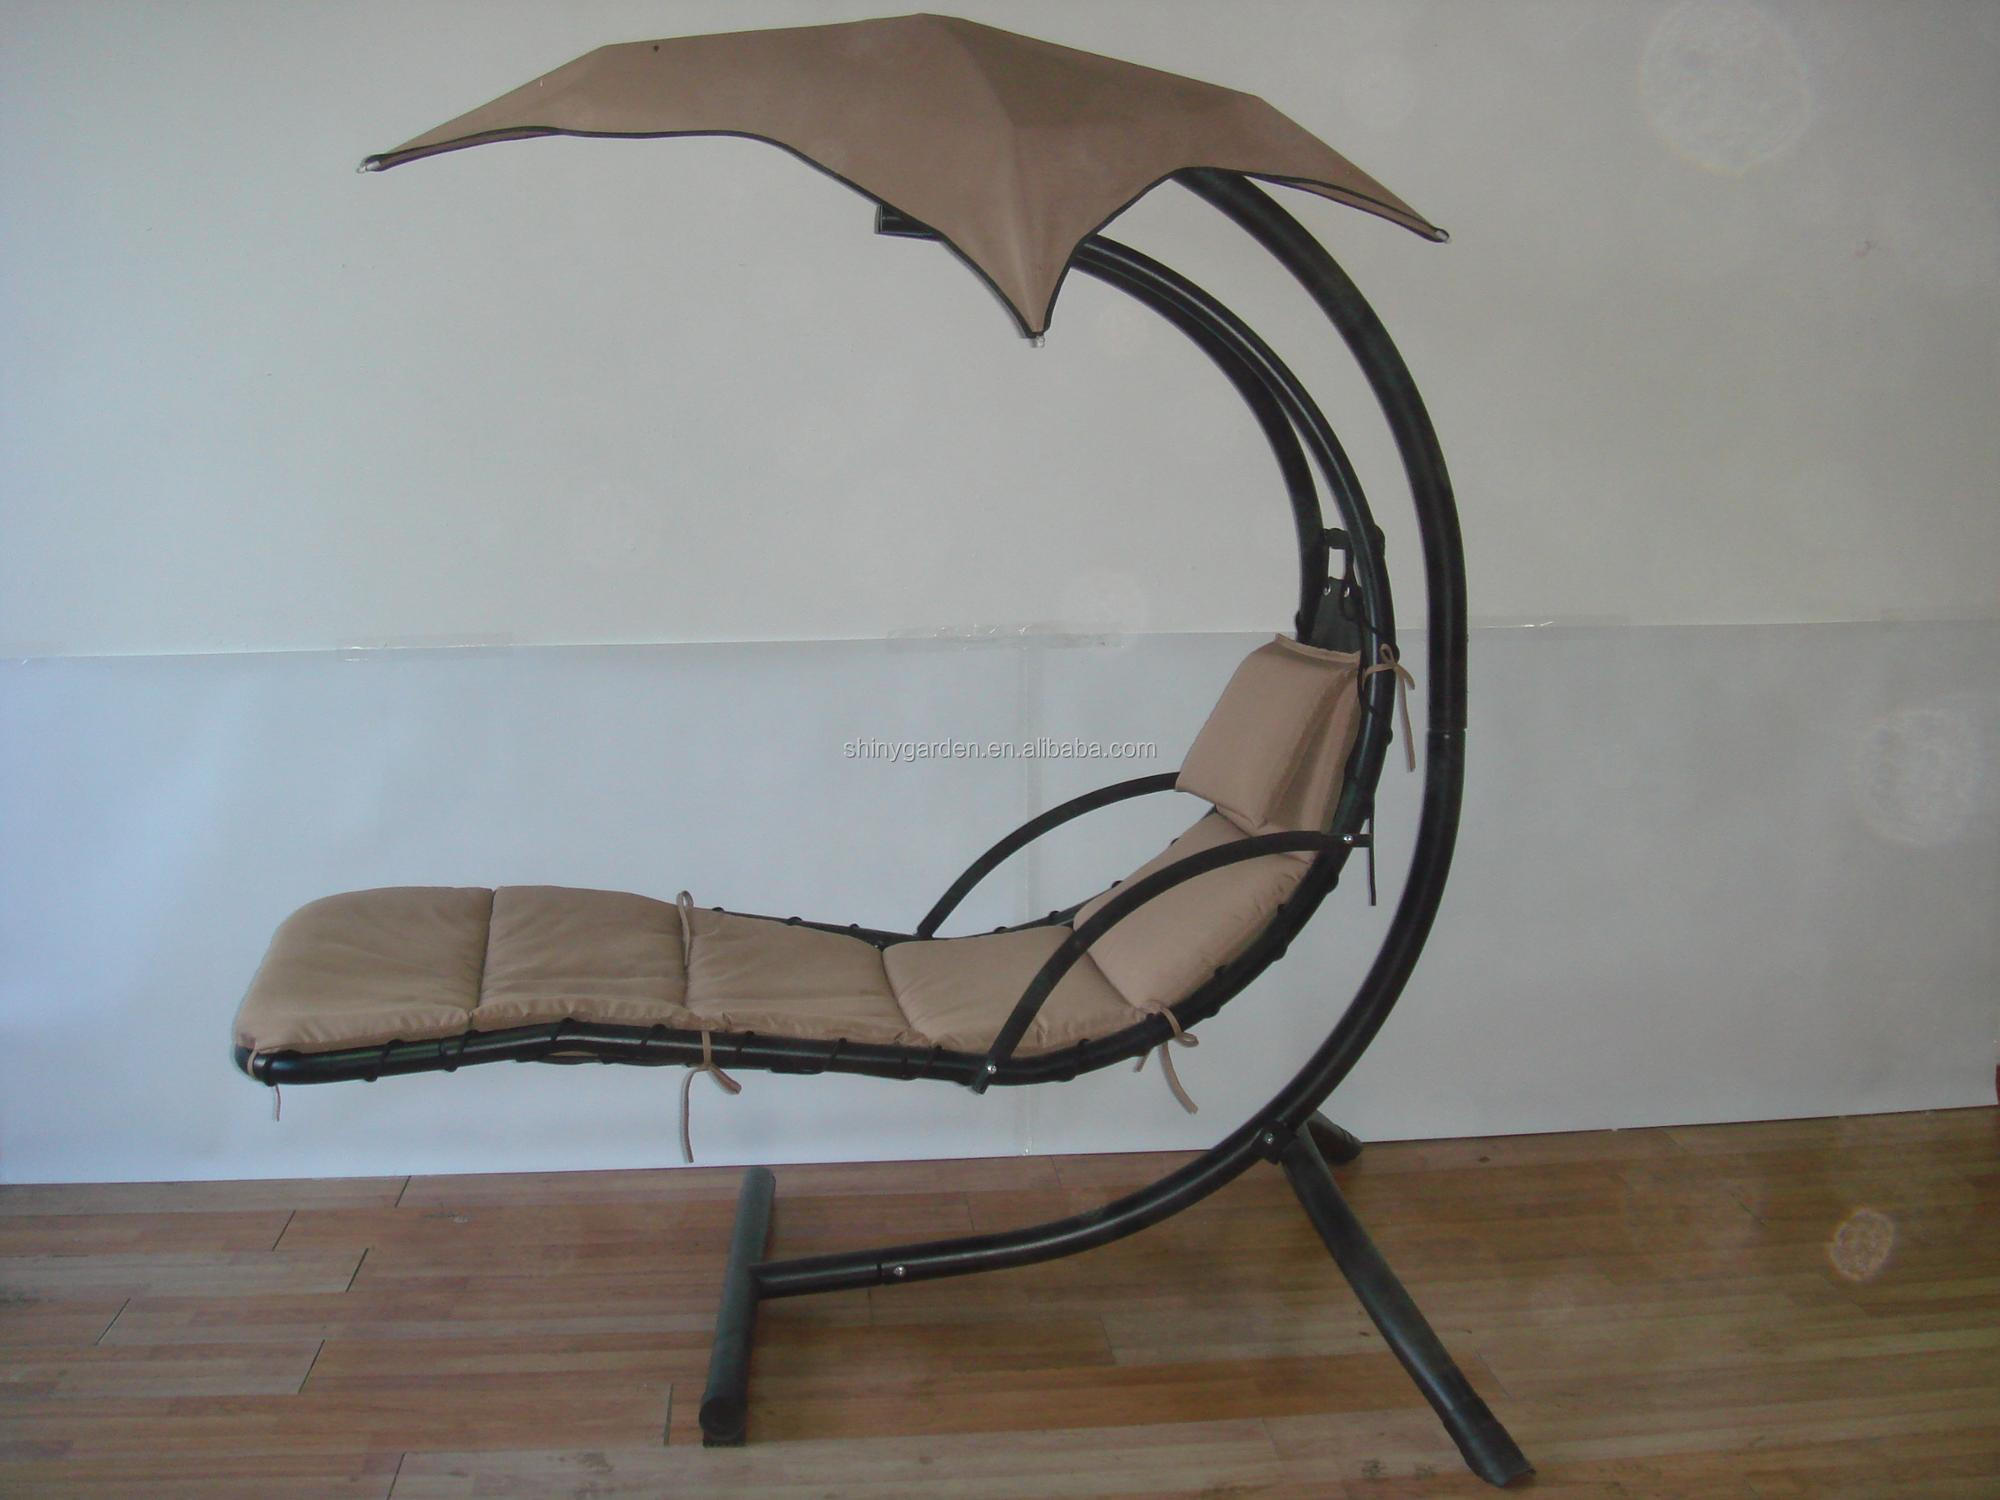 Hanging Helicopter Sun Lounger Chair Dream Chair Swing ... on Hanging Helicopter Dream Lounger Chair id=51634